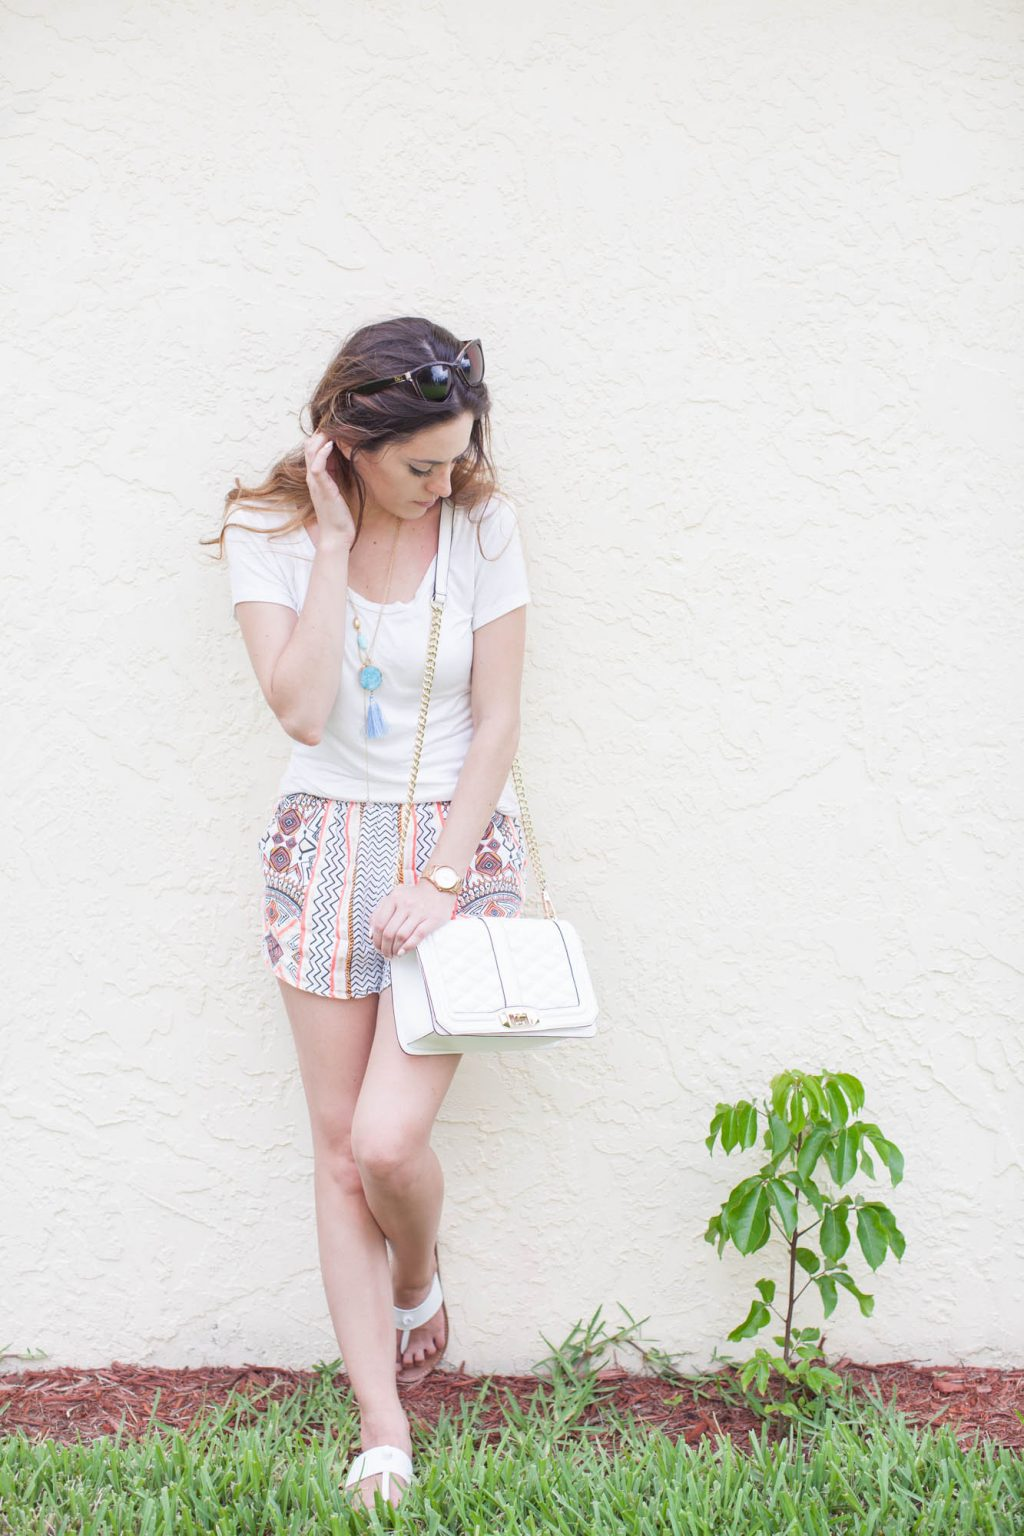 MINKPINK Space Cowboy Shorts, lunch date, casual summer style, tribal printed shorts, rebecca minkoff love crossbody in white, white sandals